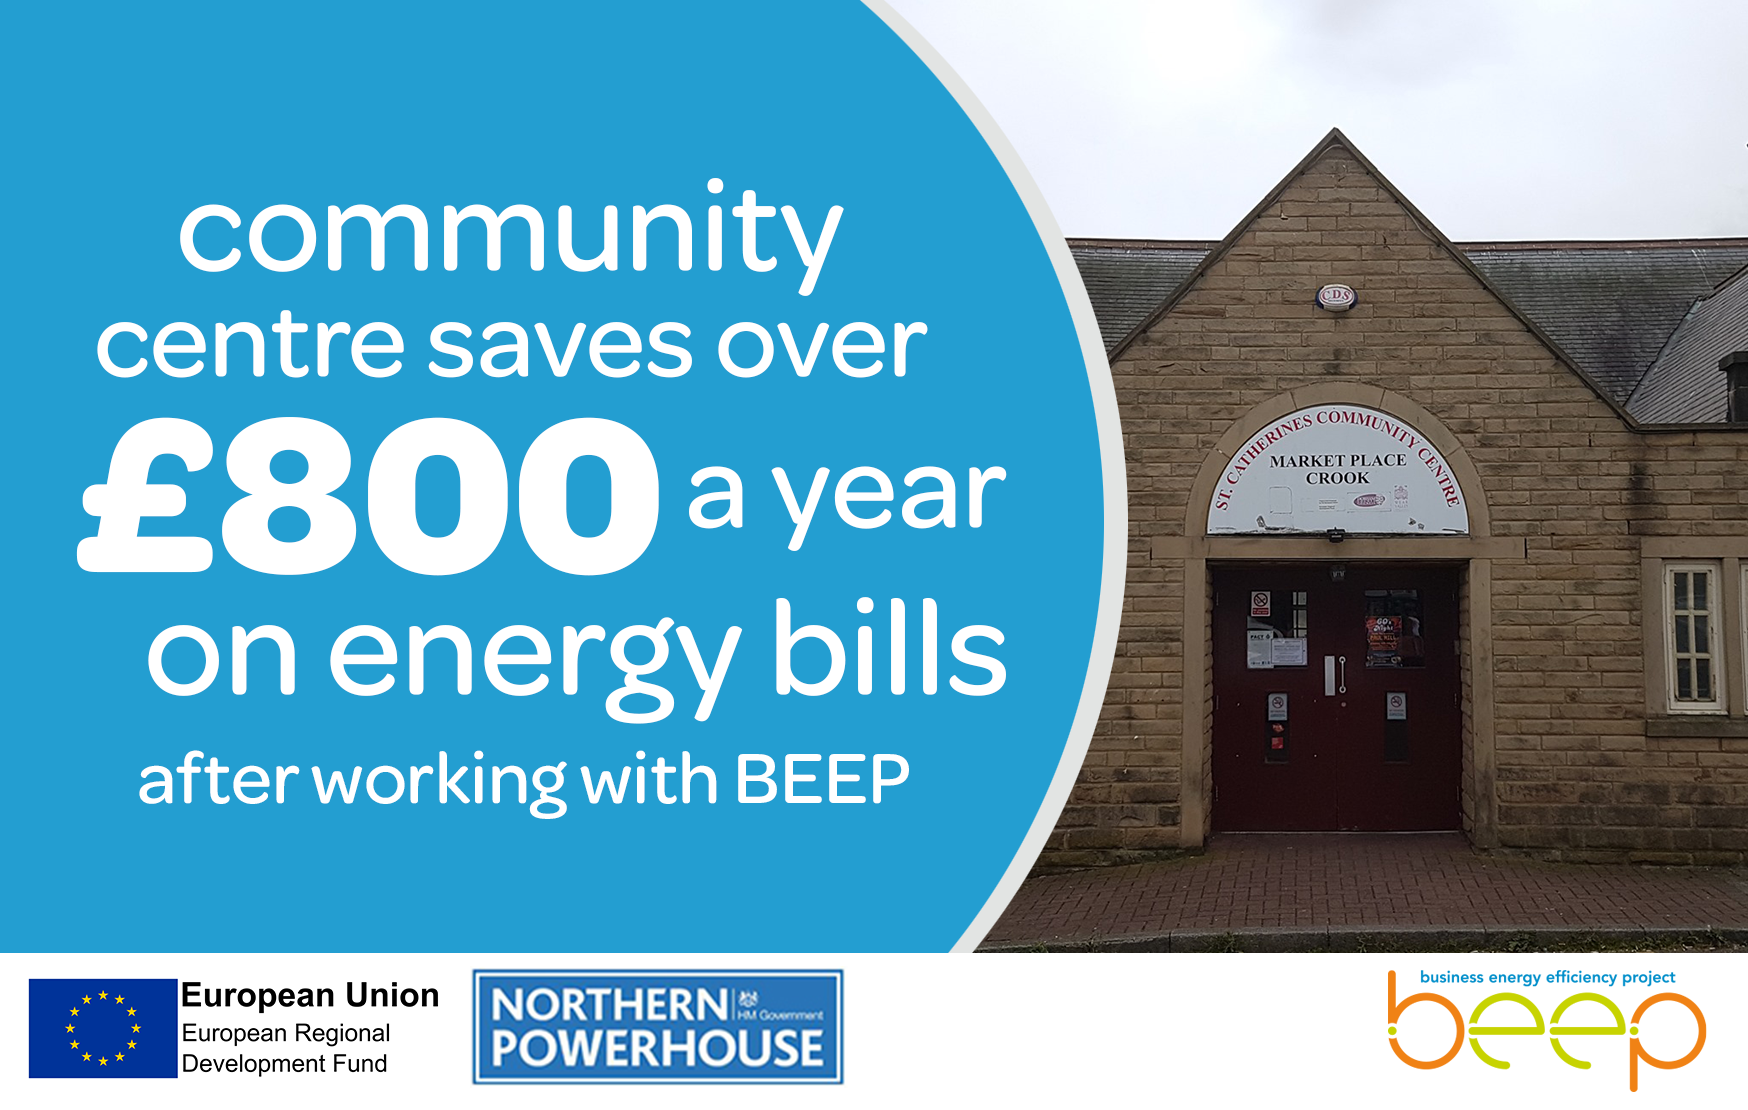 exterior St Catherine's Community Centre overlayed with text community centre saves over £800 a year on energy bills after working with beep